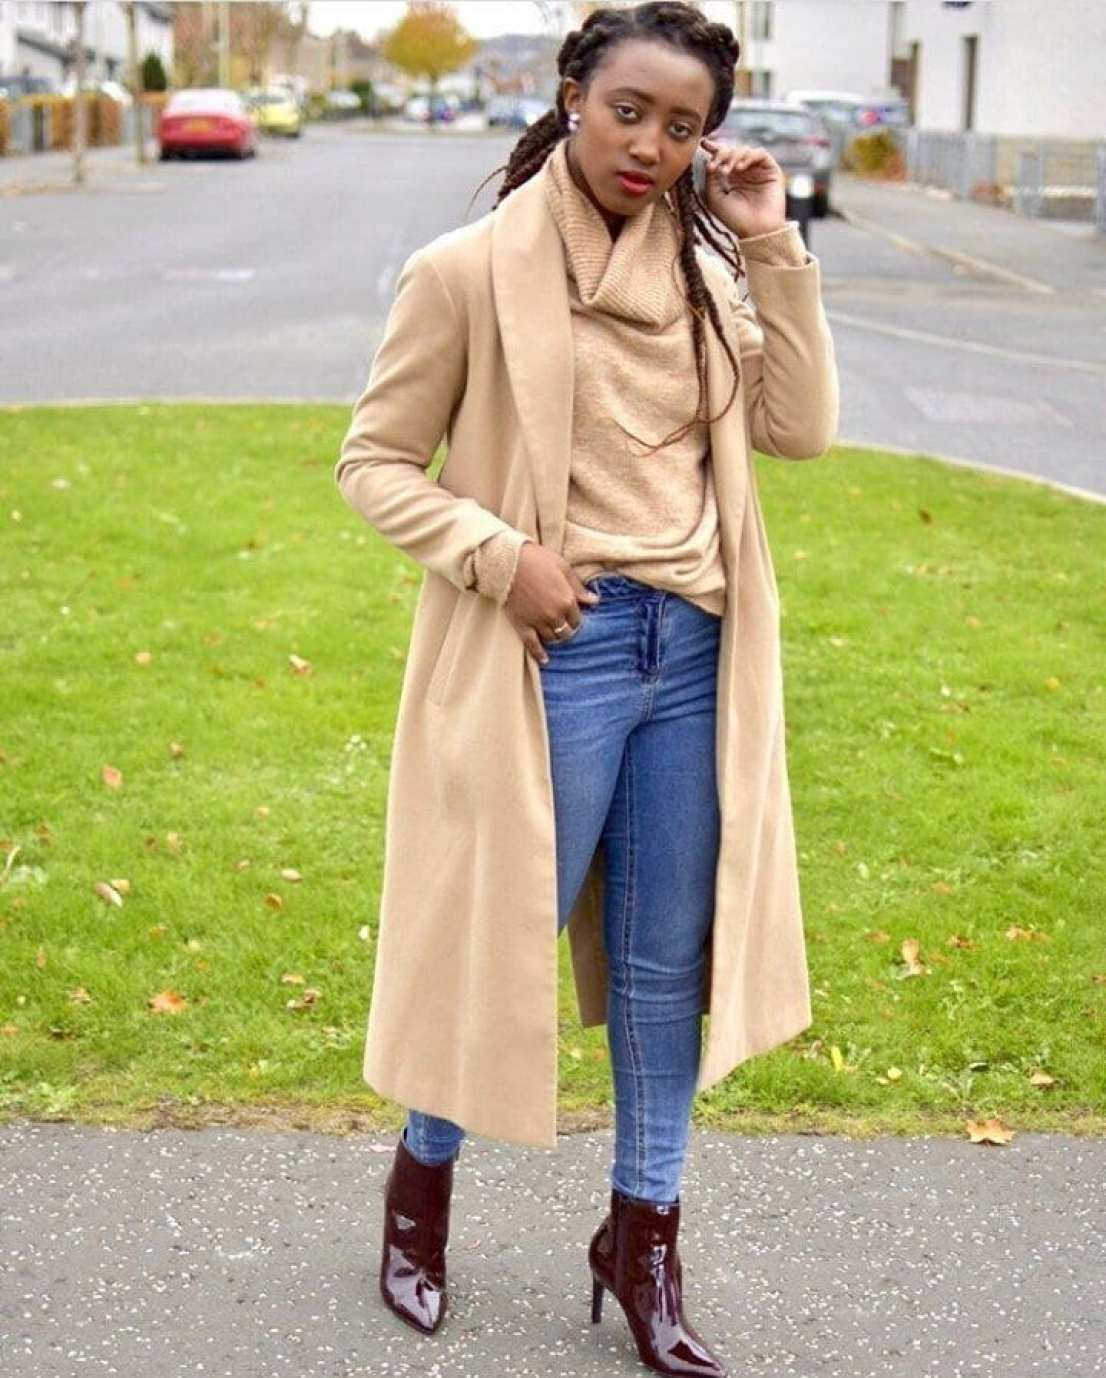 How to Look Classy in Fall